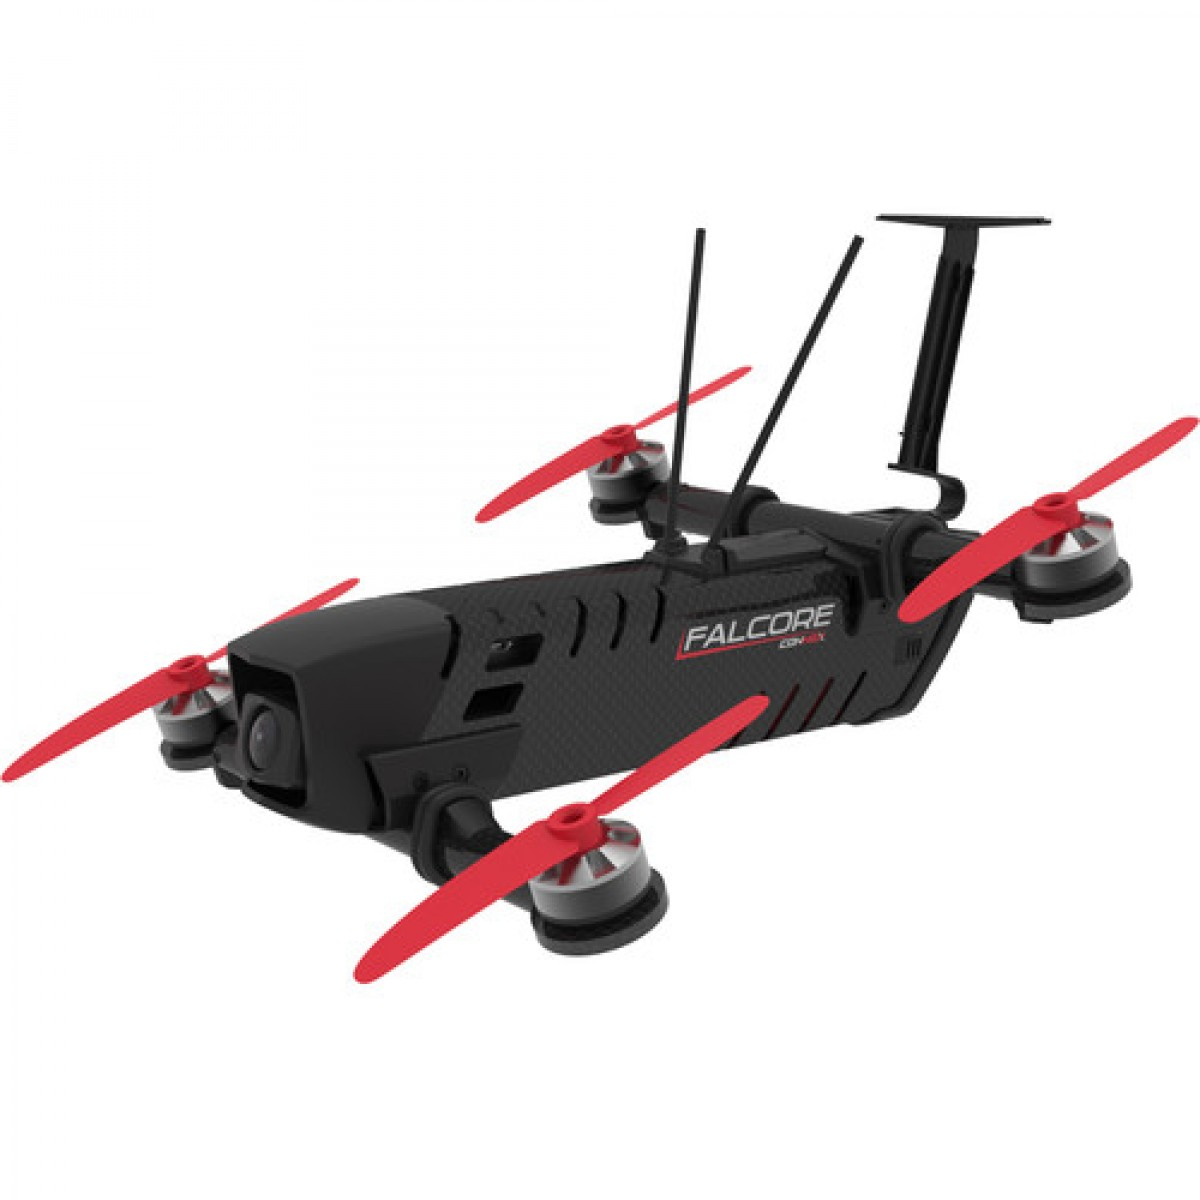 Amimon Falcore Racing Drone Kit with HD FPV System, Transmitter, and Battery